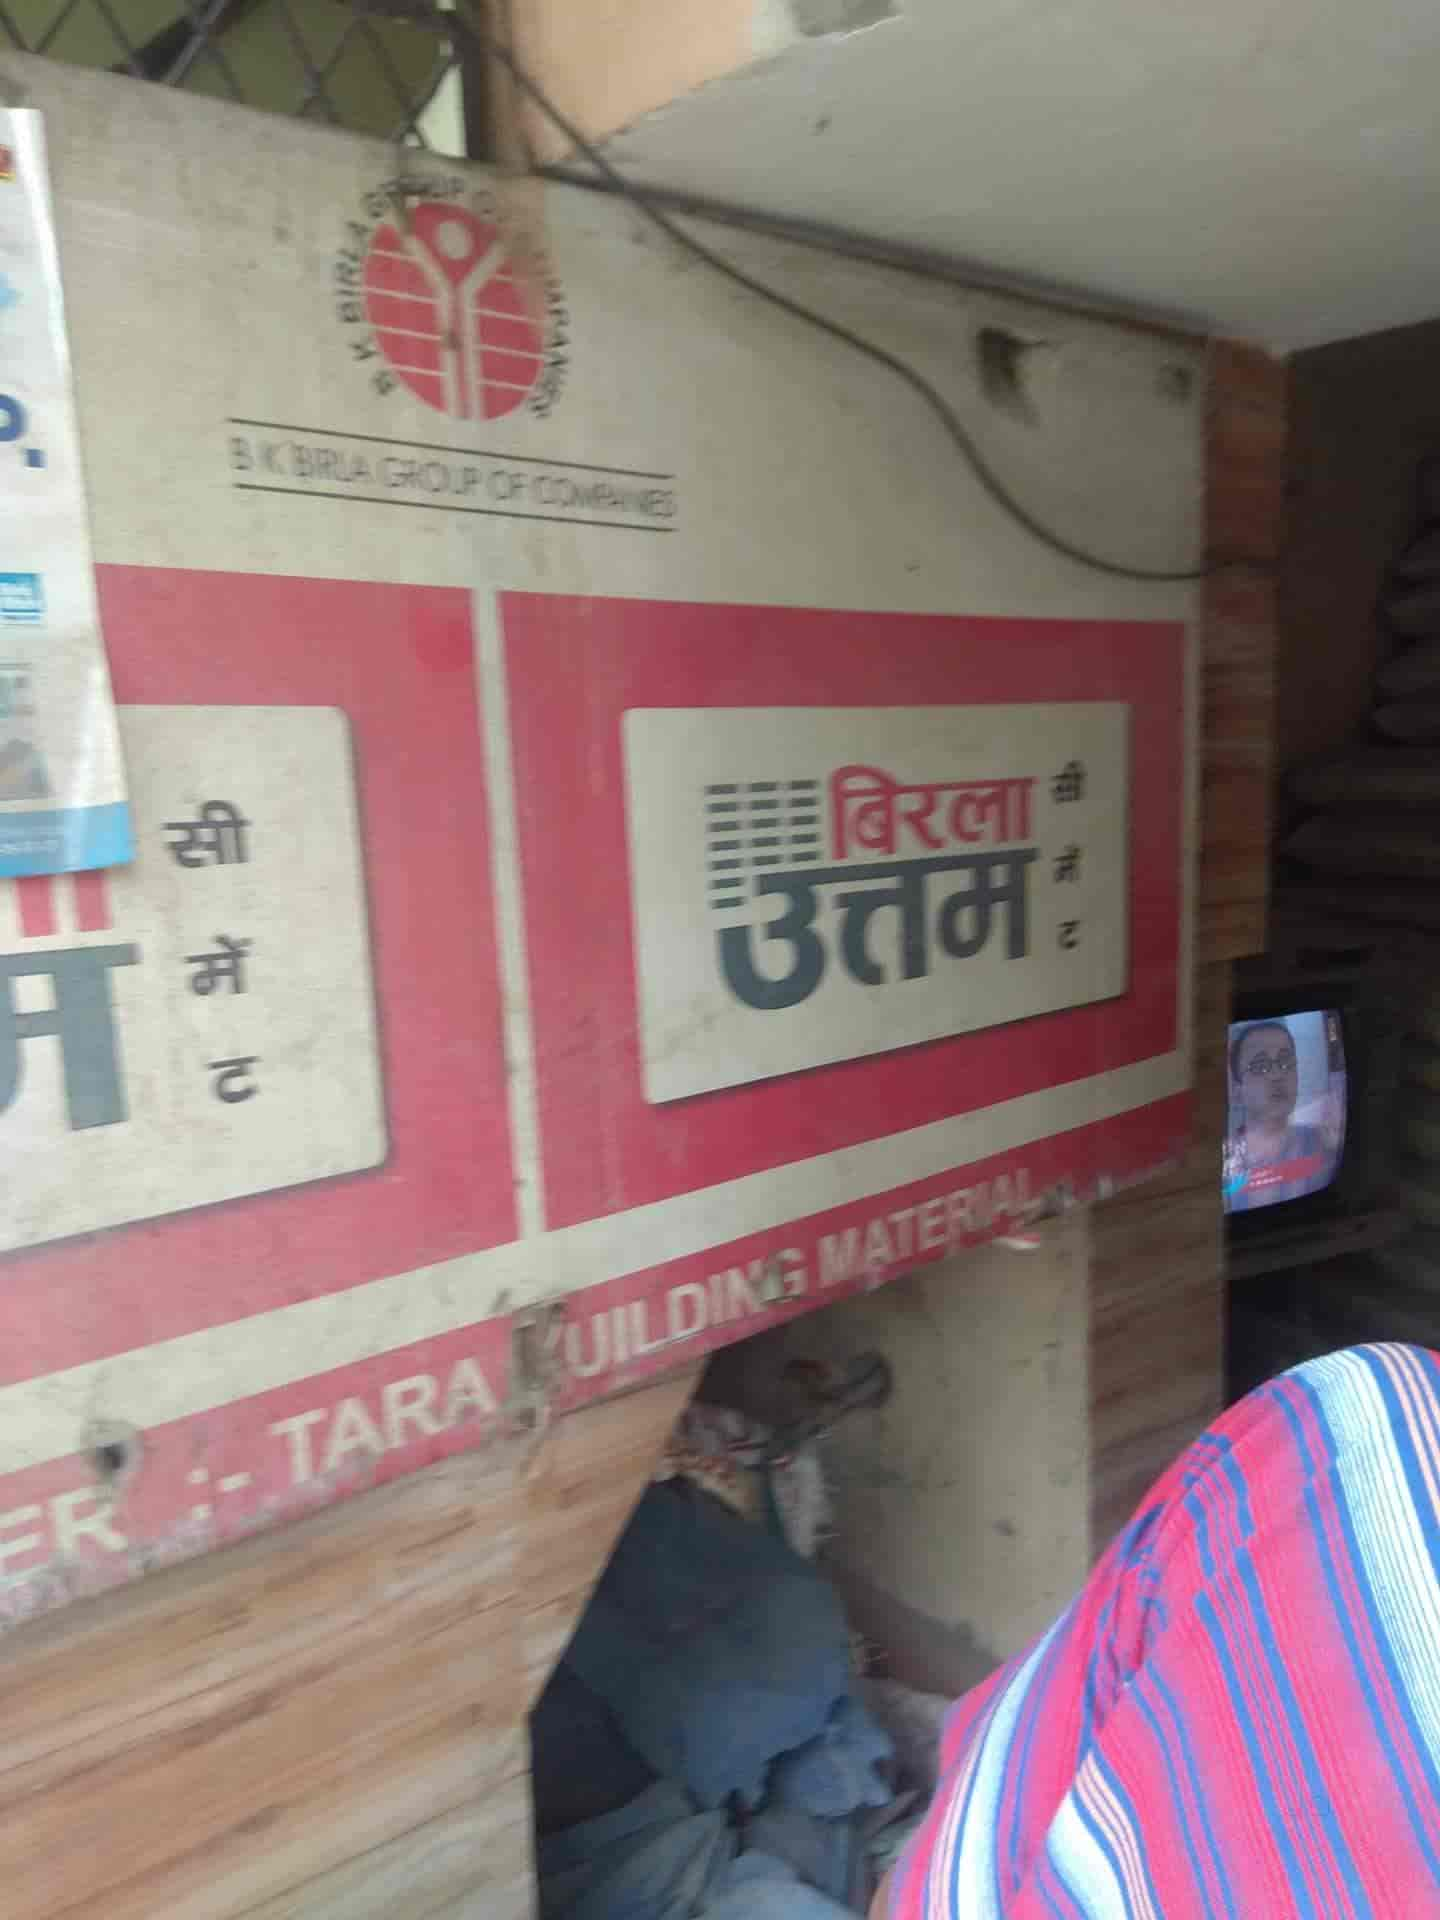 Tara Building Material Suppliers Photos, Janakpuri, Delhi- Pictures